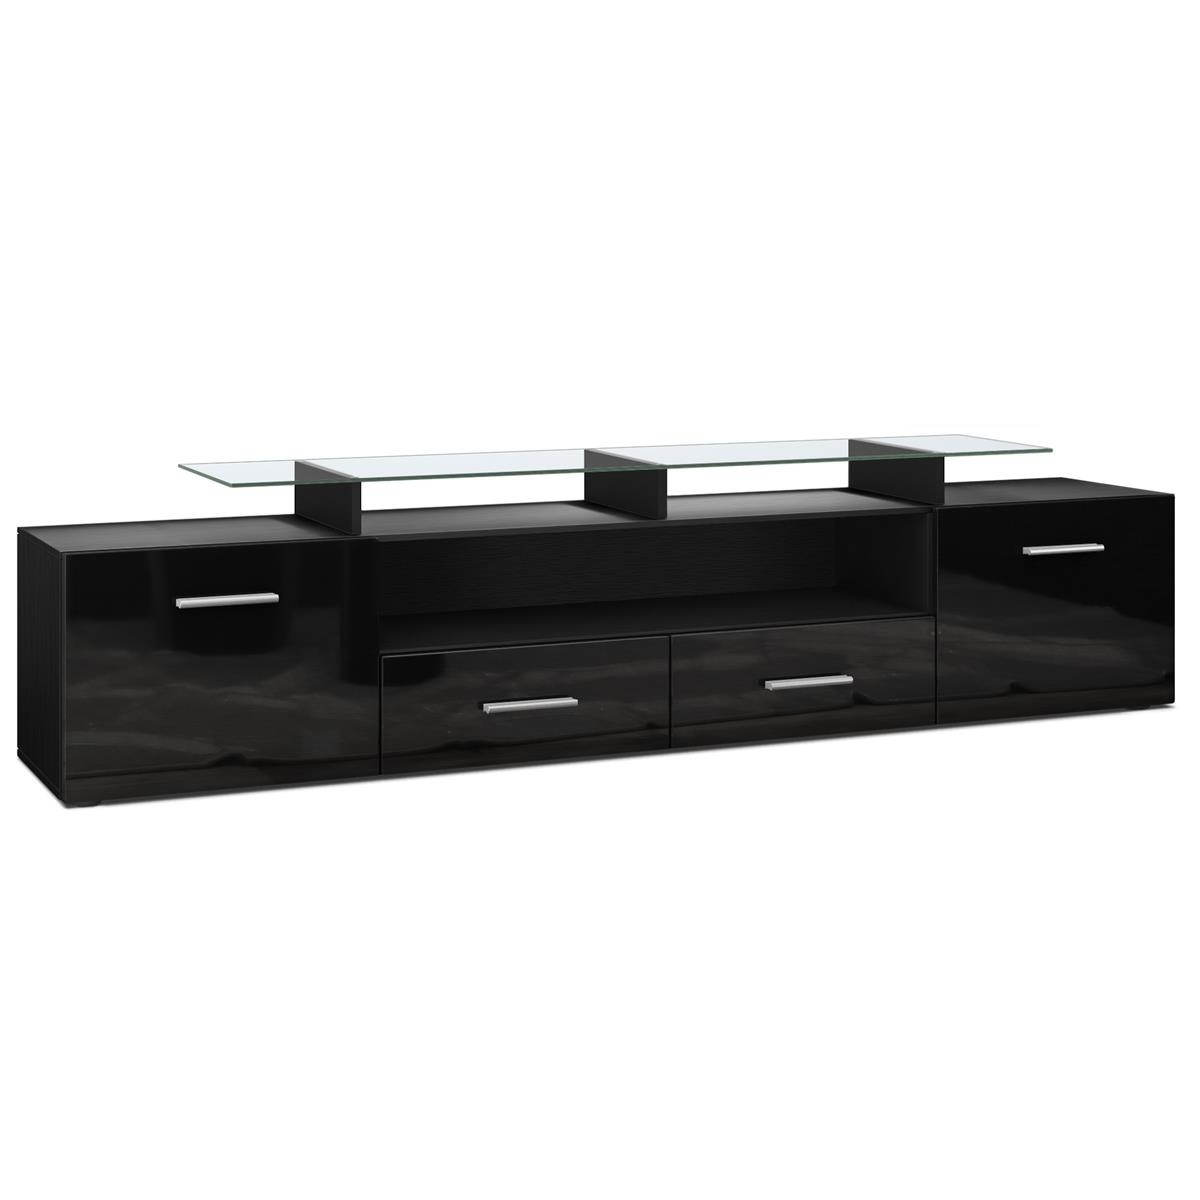 almada v2 tv board als kommode vladon m bel. Black Bedroom Furniture Sets. Home Design Ideas